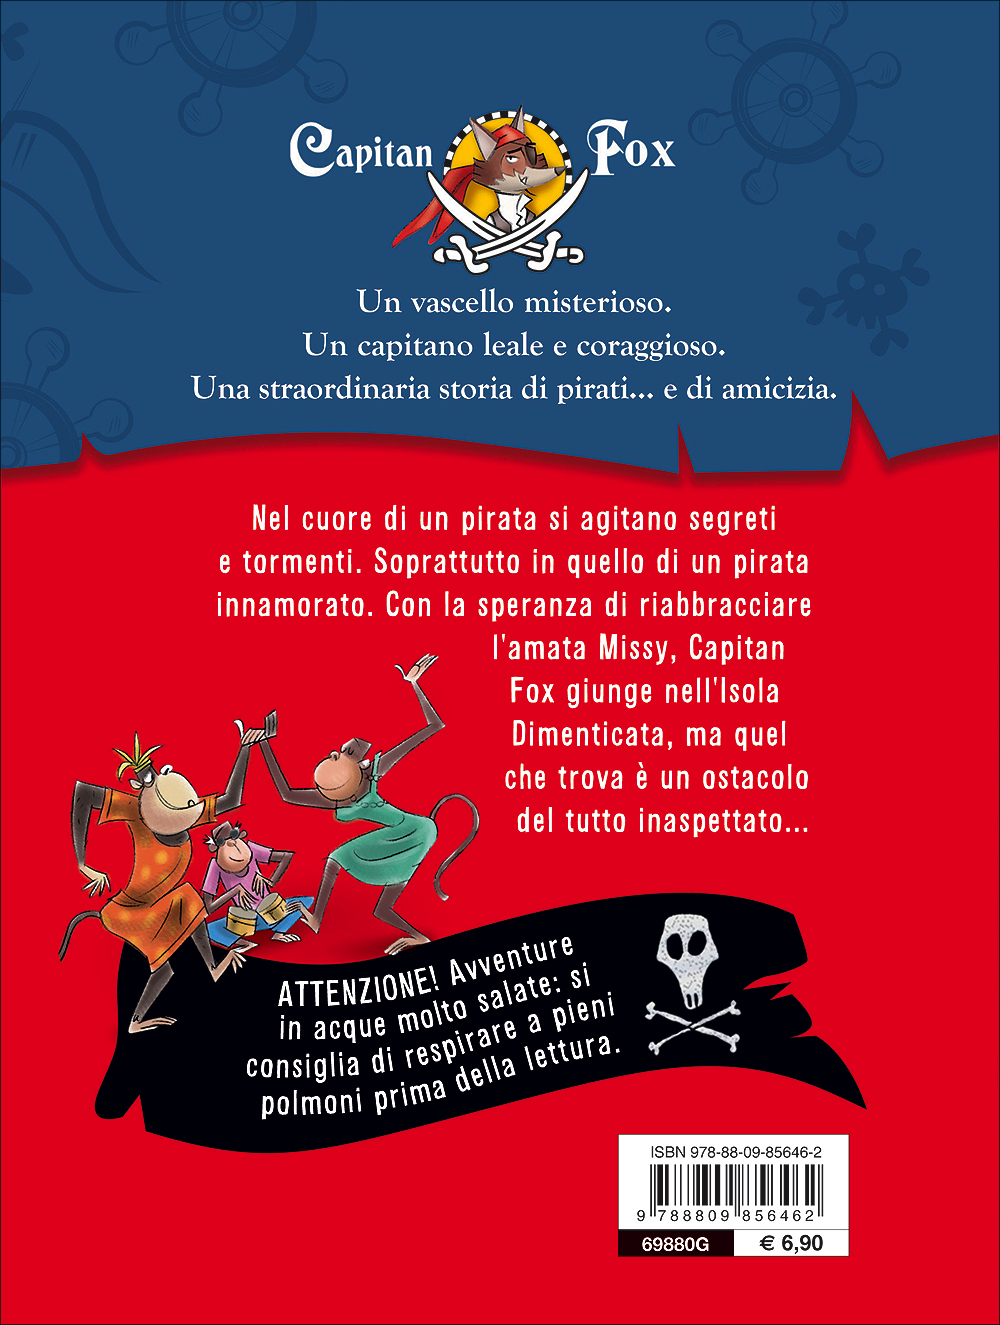 Capitan Fox - Cuori in tempesta